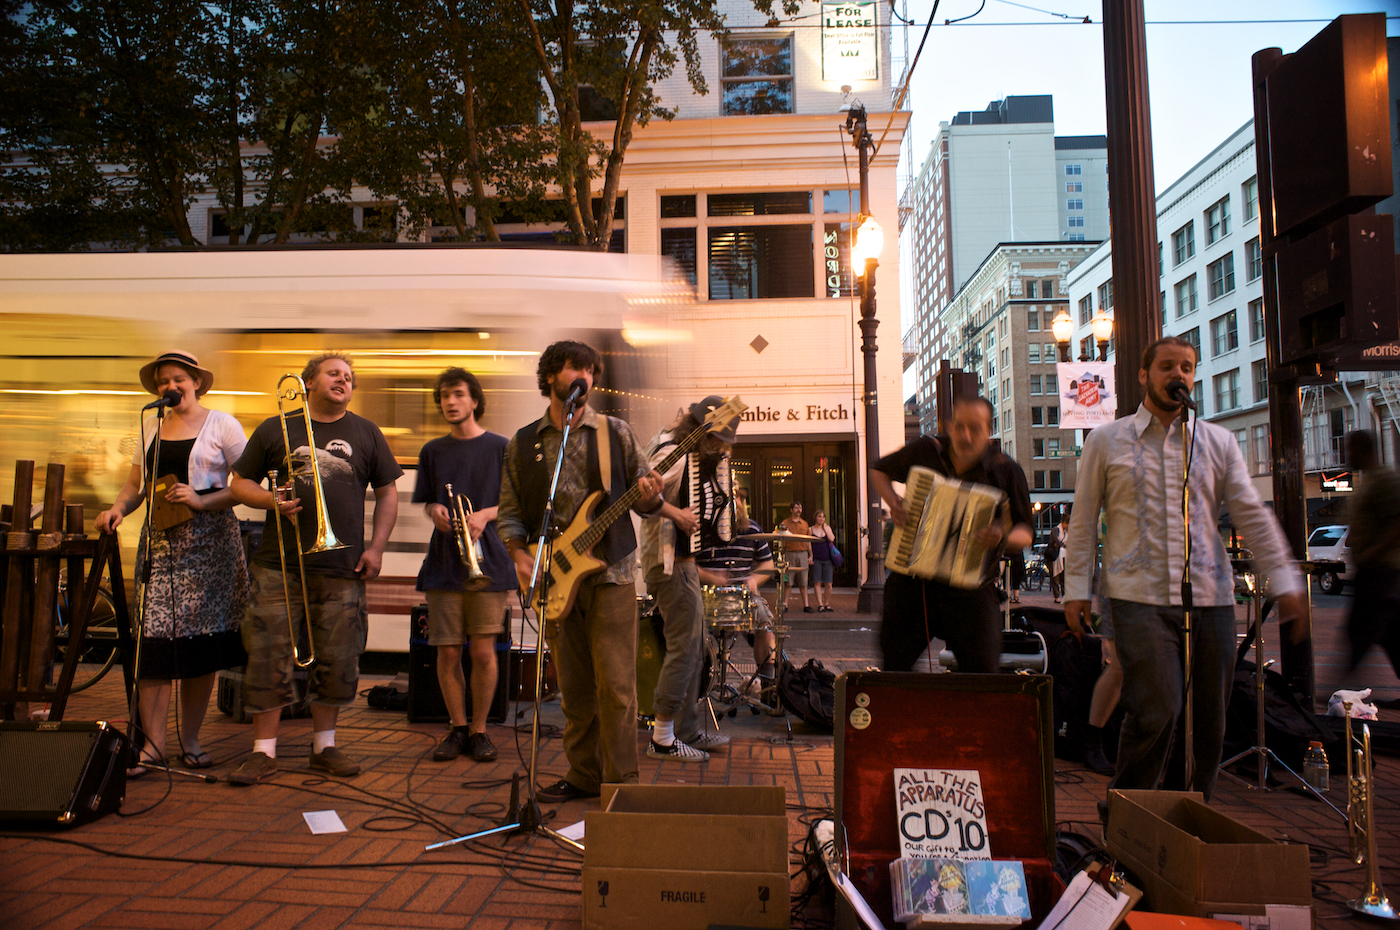 All-That-Apparatus-Street-Perform 'Keeping it weird' in Portland